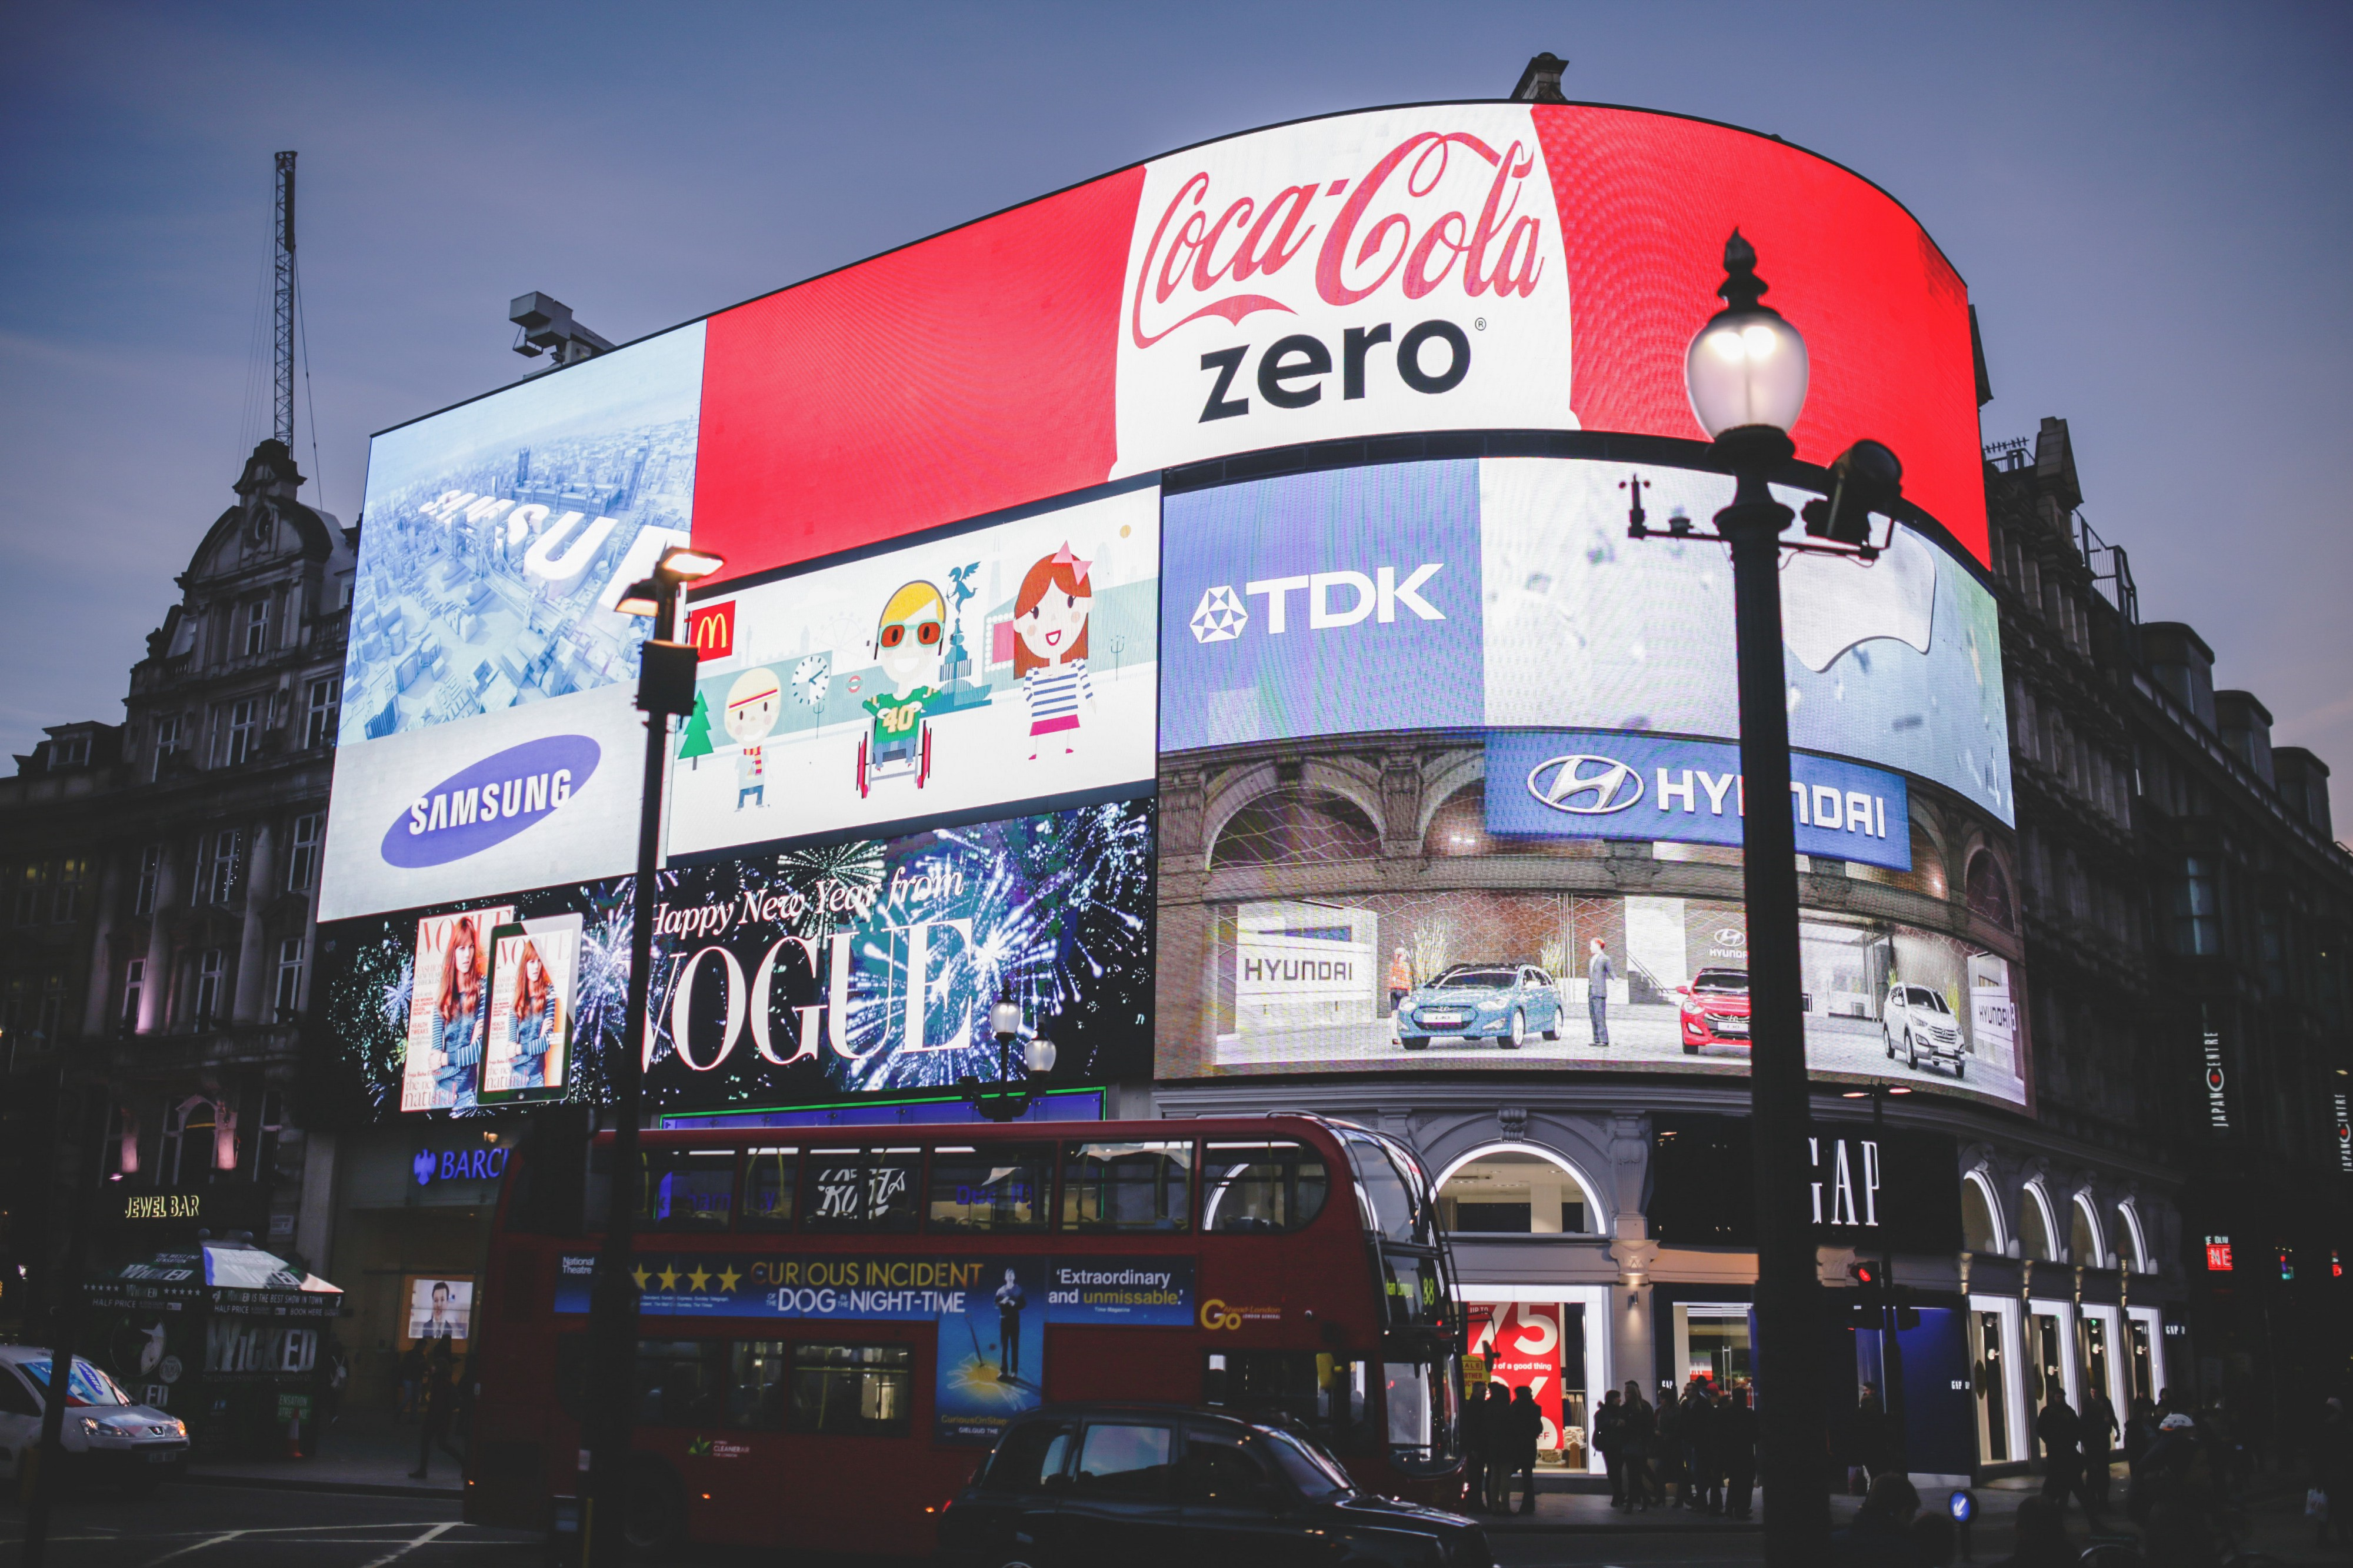 London Piccadilly Circus showing loads of Advertisement work.